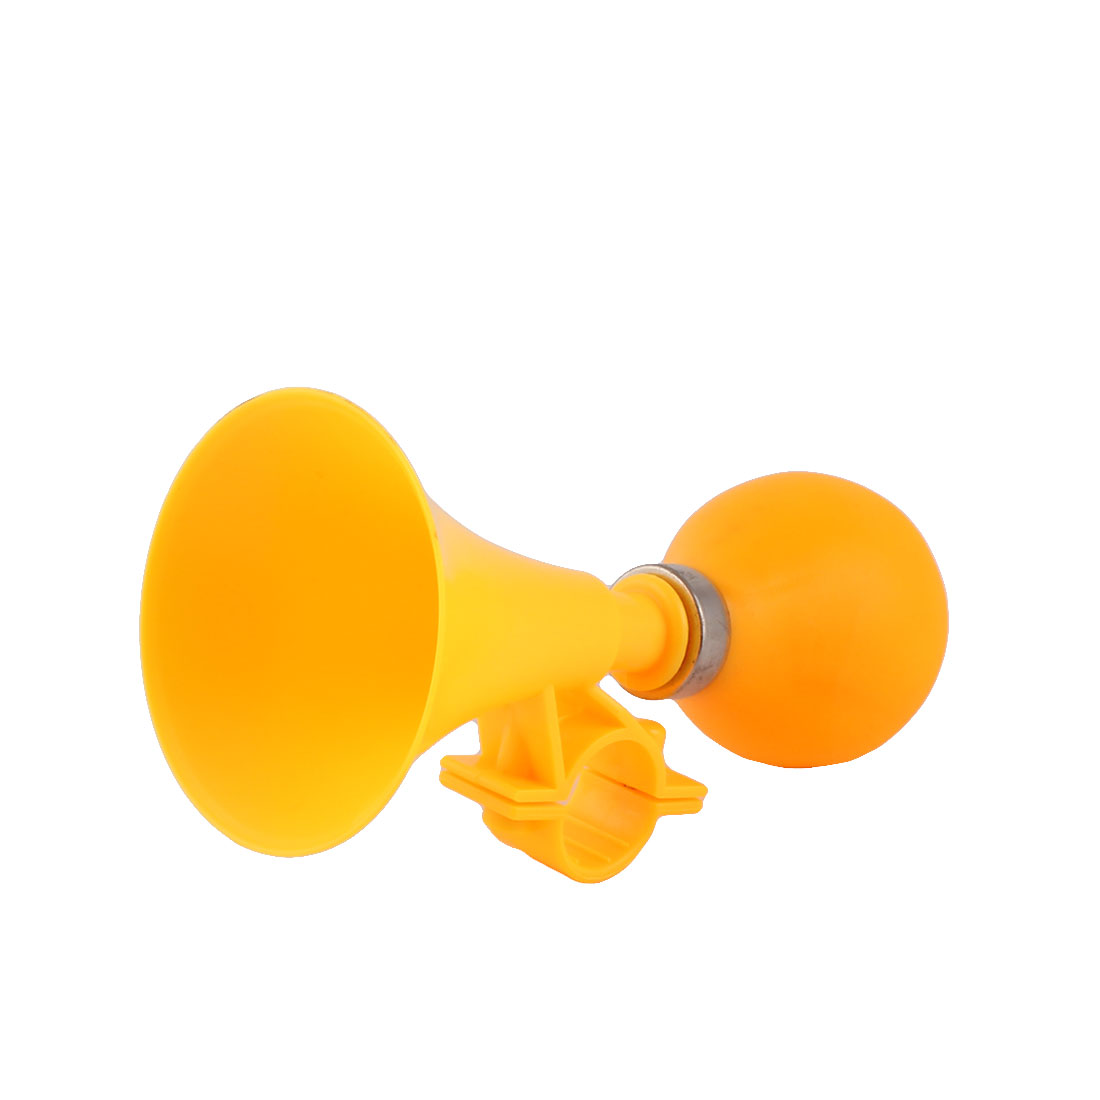 Bicycle Bike Cycling Rubber Squeeze Bulb Hooter Bell Air Horn Trumpet Dark Yellow